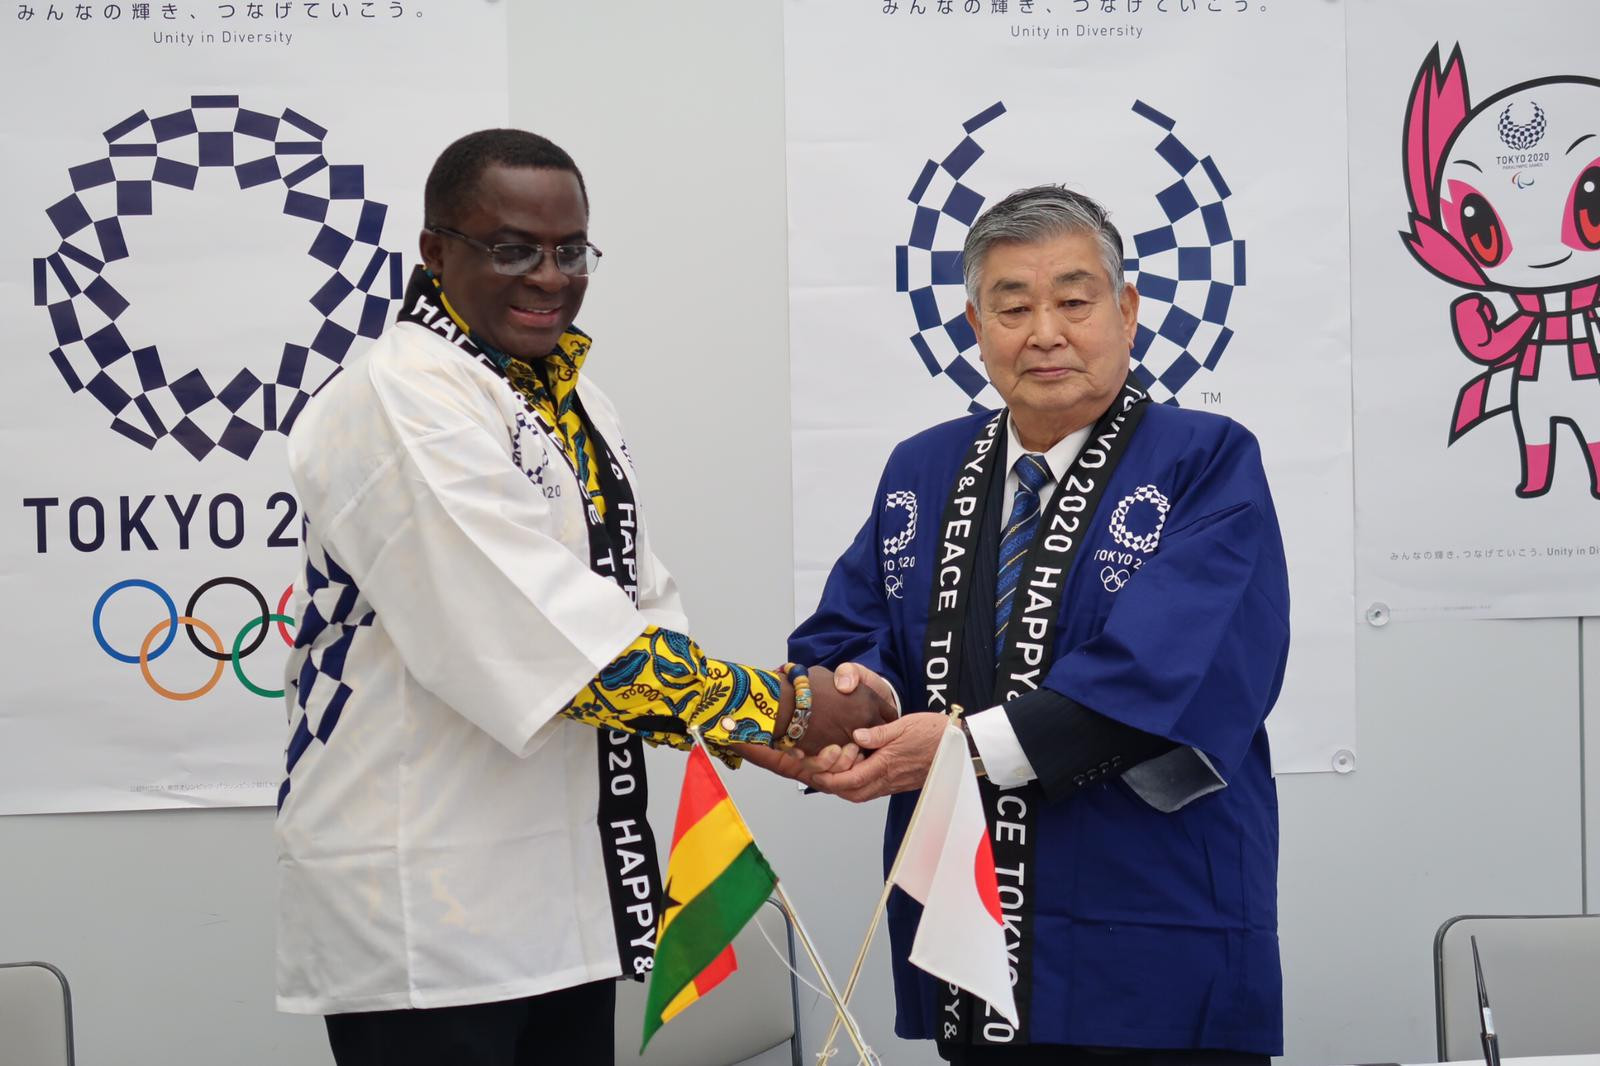 President of the GOC Ben Nunoo-Mensah and the mayor of Inawashiro Town Hiroshi Zenga signed a memorandum of understanding allowing access to free training facilities prior to the Tokyo 2020 Olympic Games ©GOC